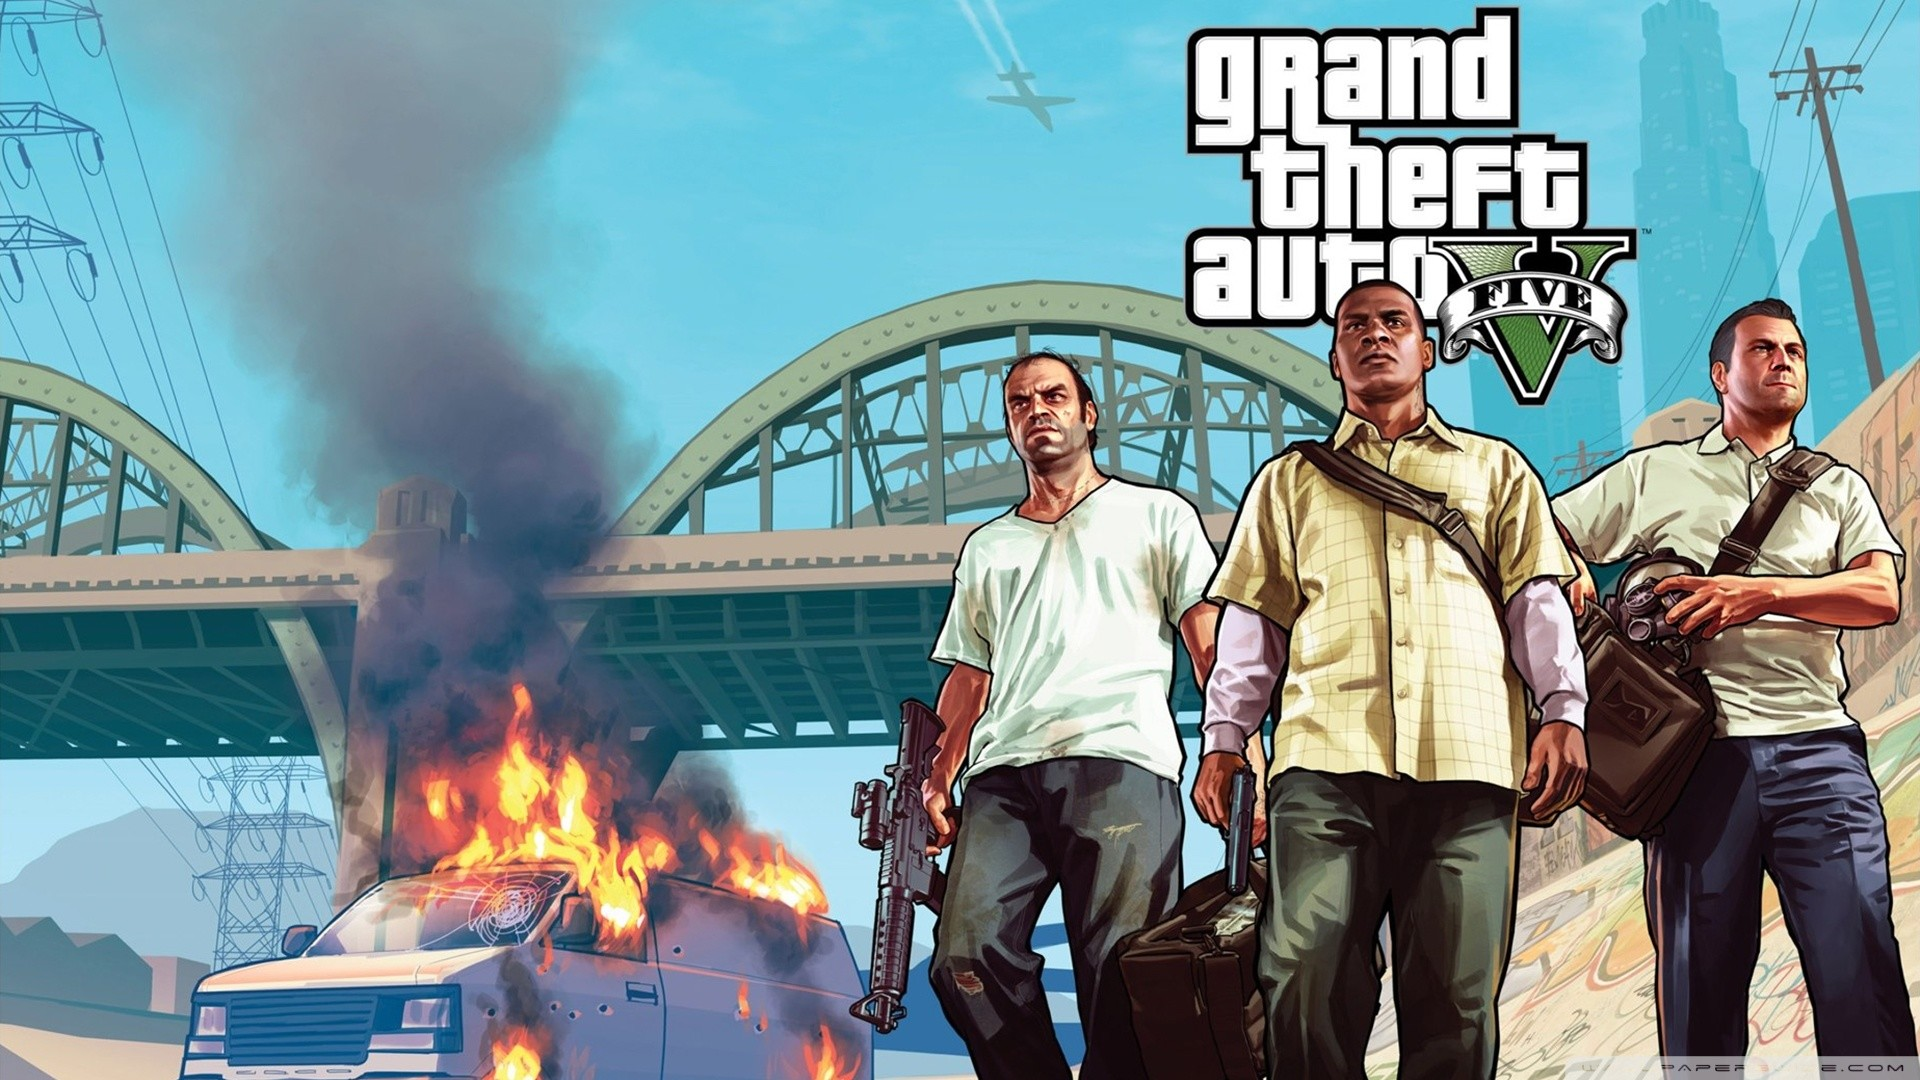 Gta V Wallpaper 1920x1080 81 Images